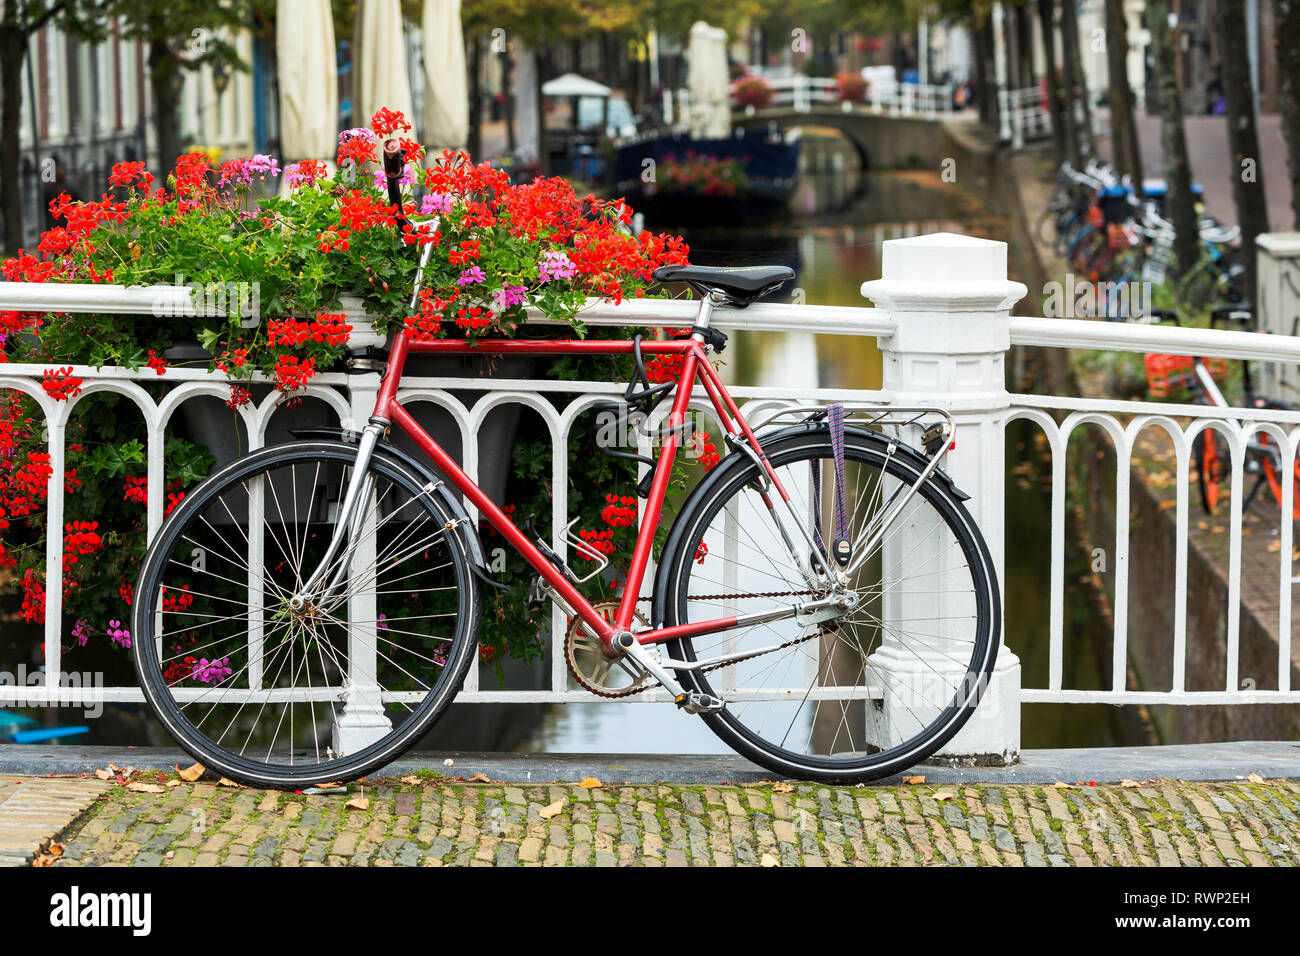 Bike along white metal railing on stone bridge with colourful flowers in box and canal in the background below; Delft, South Holland, Netherlands Stock Photo